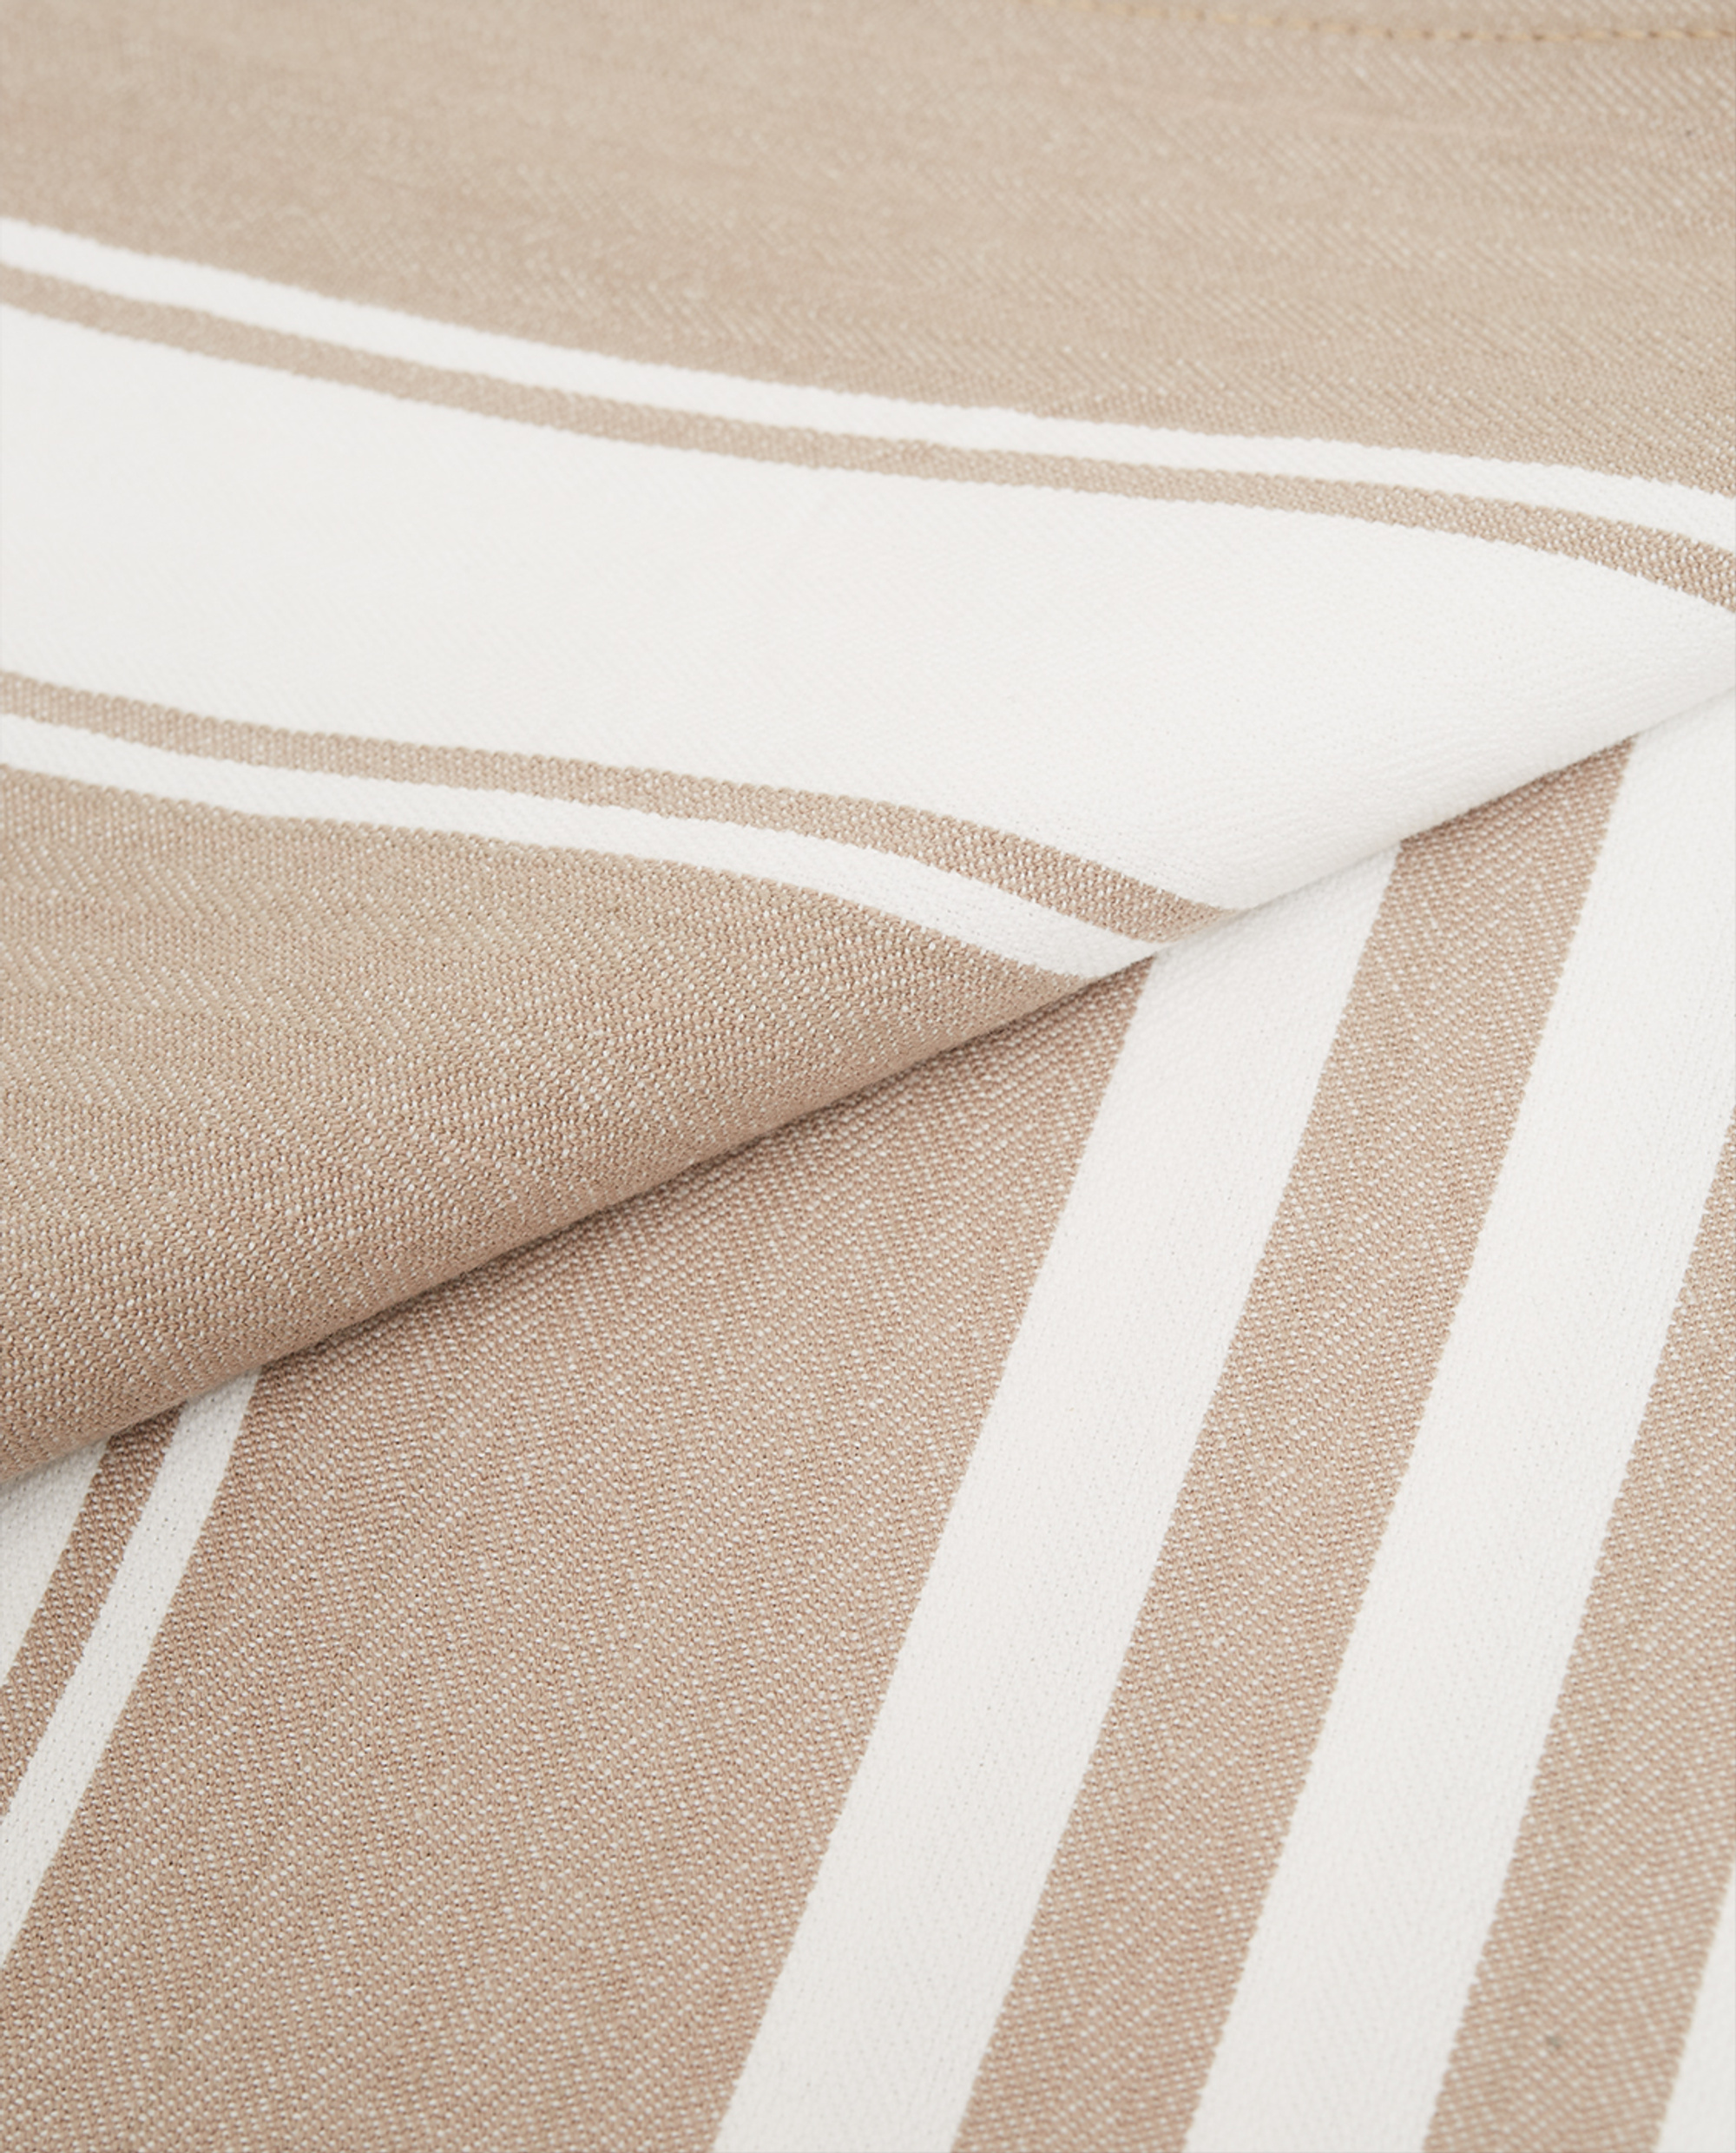 Icons Cotton Herringbone Striped Tablecloth, Beige/White